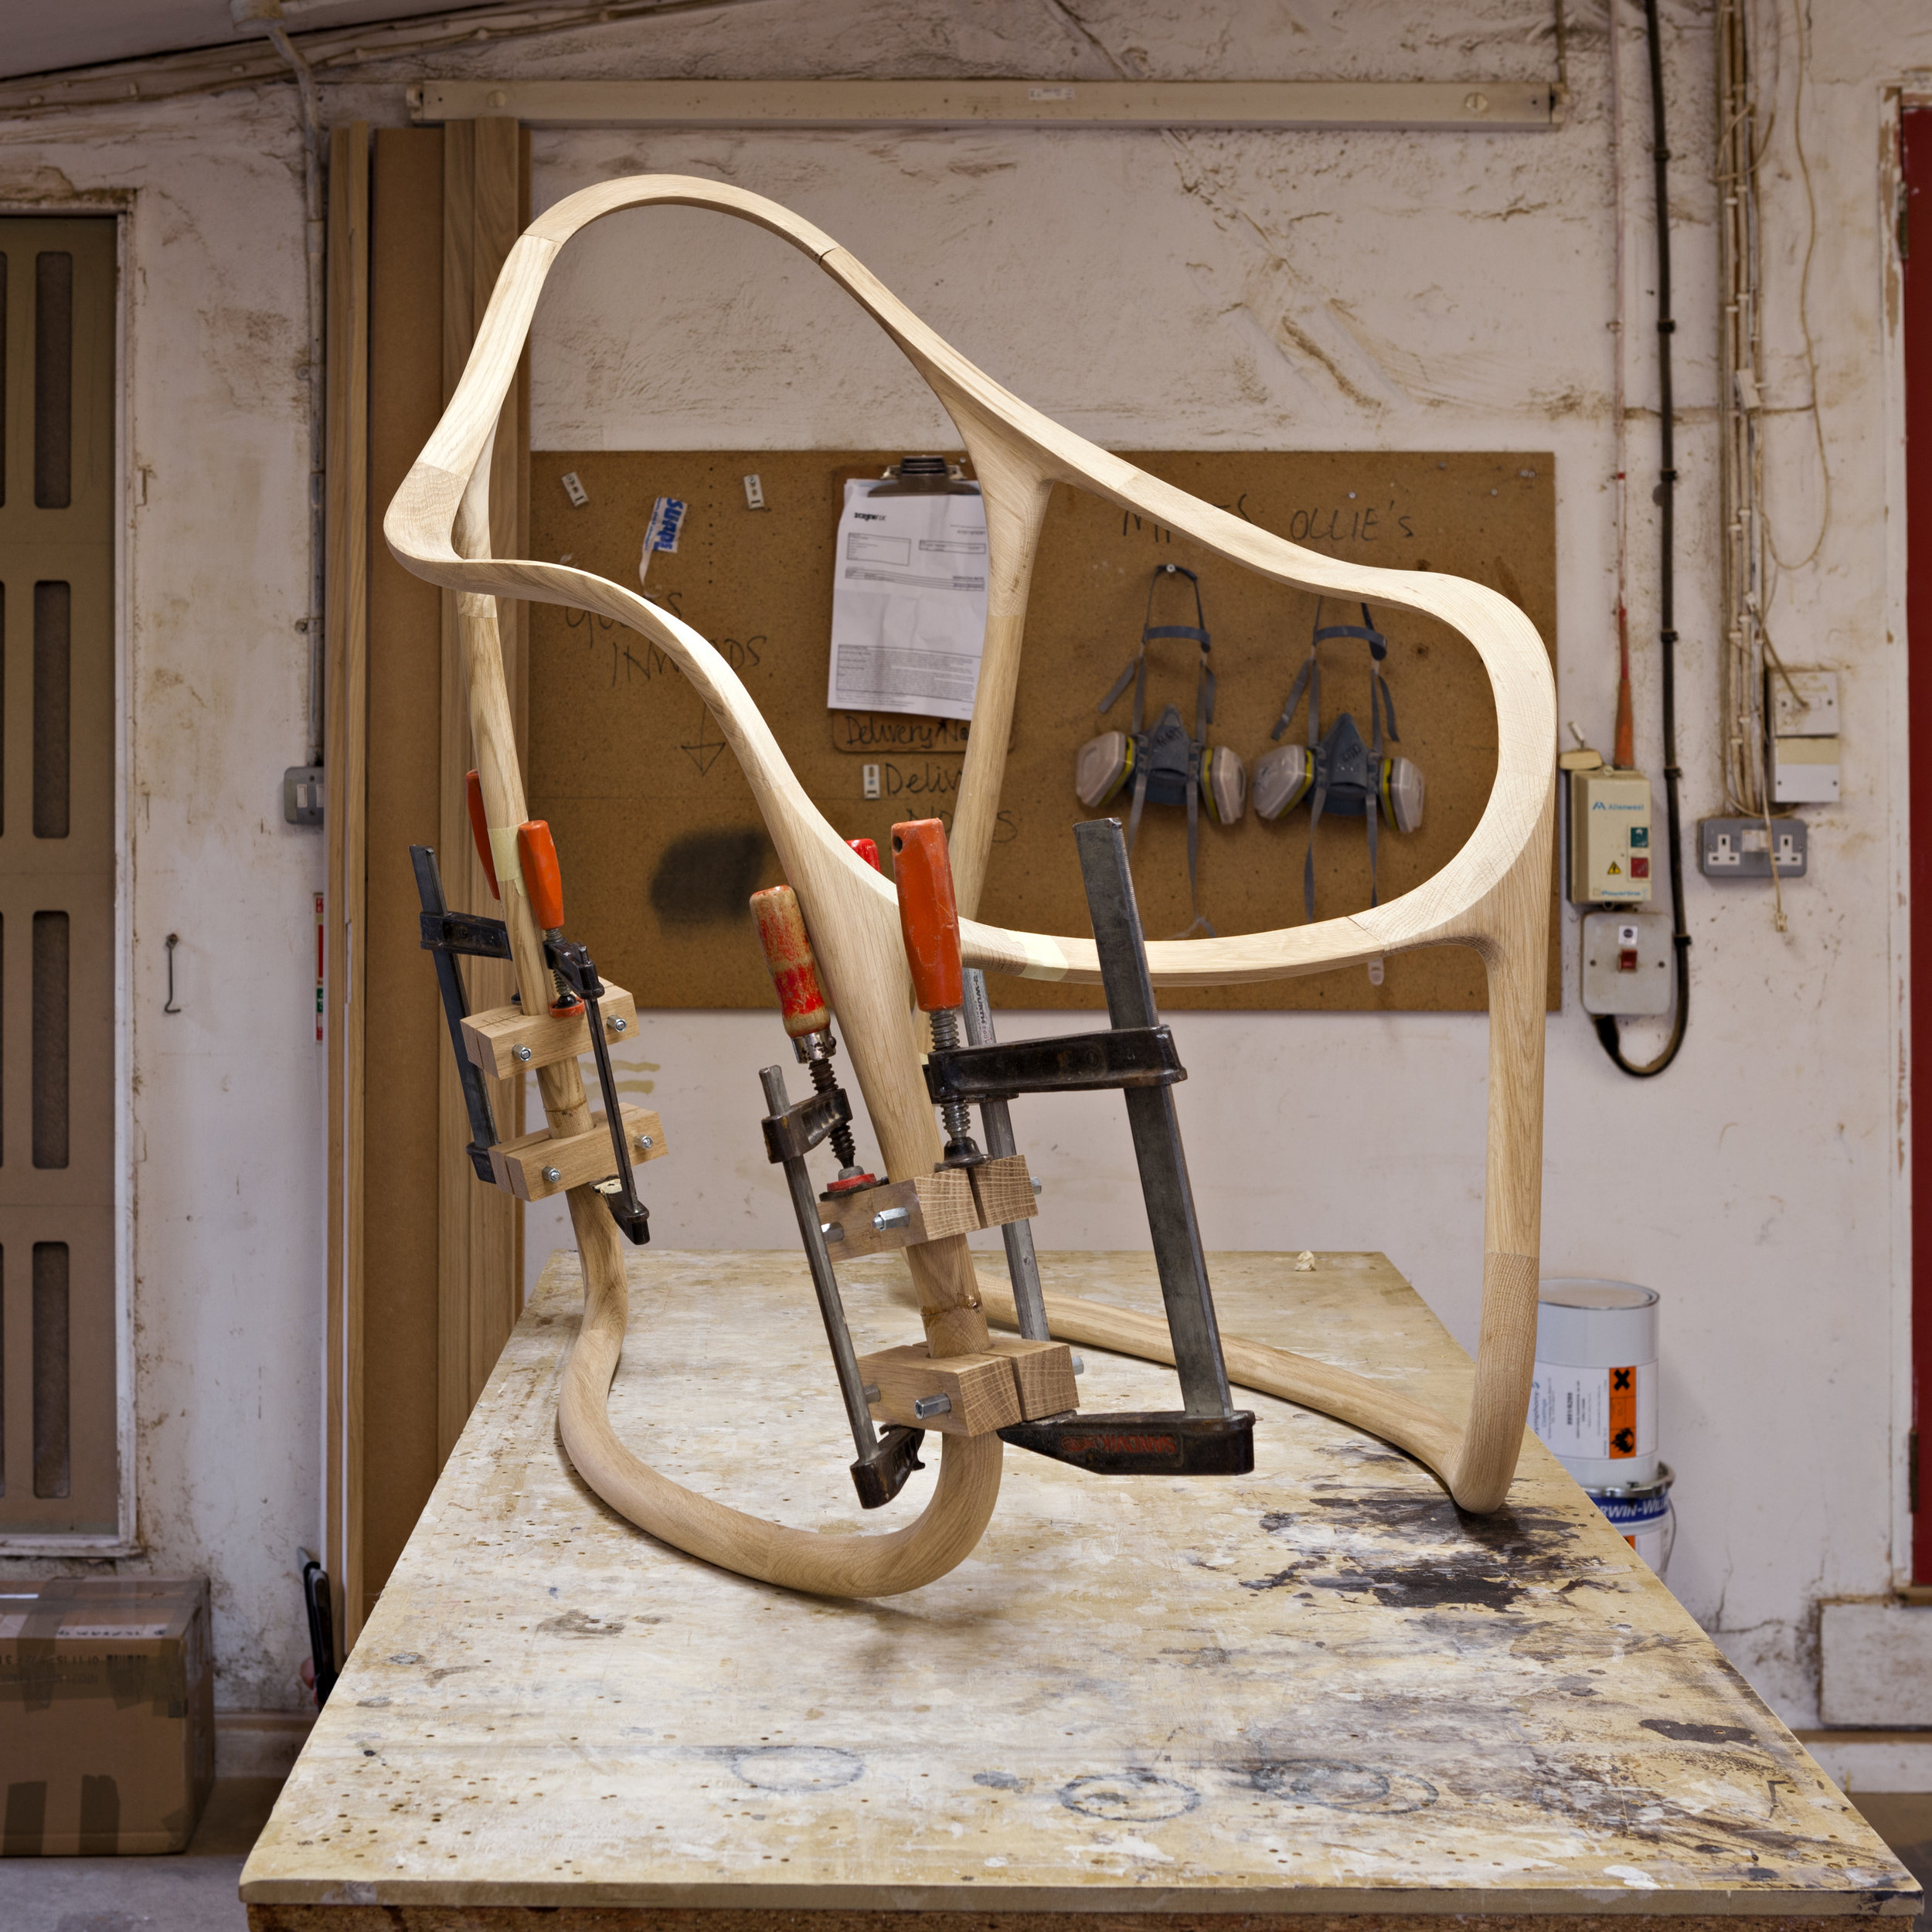 Rush Chair - CNC and hand-tooled chair frame © Michael Franke